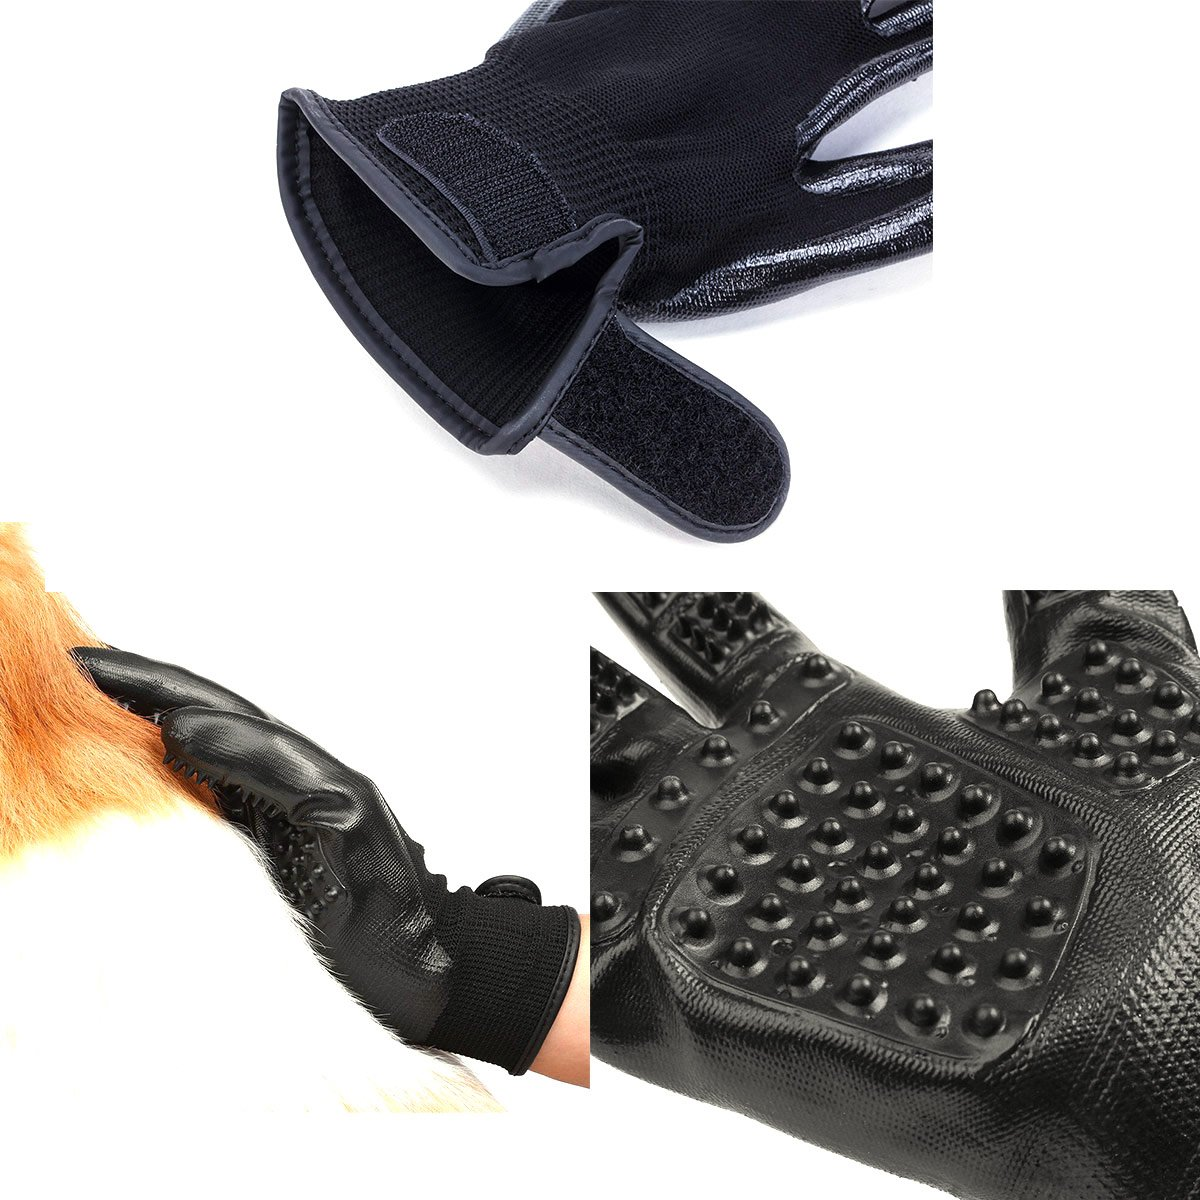 LibbyPet Pet Glooming Gloves for Cats and Dogs Hair Remover Deshedding Brush Glove Combing Massage for Long & Short Fur – Left & Right Hand (Black-S) by LibbyPet (Image #6)